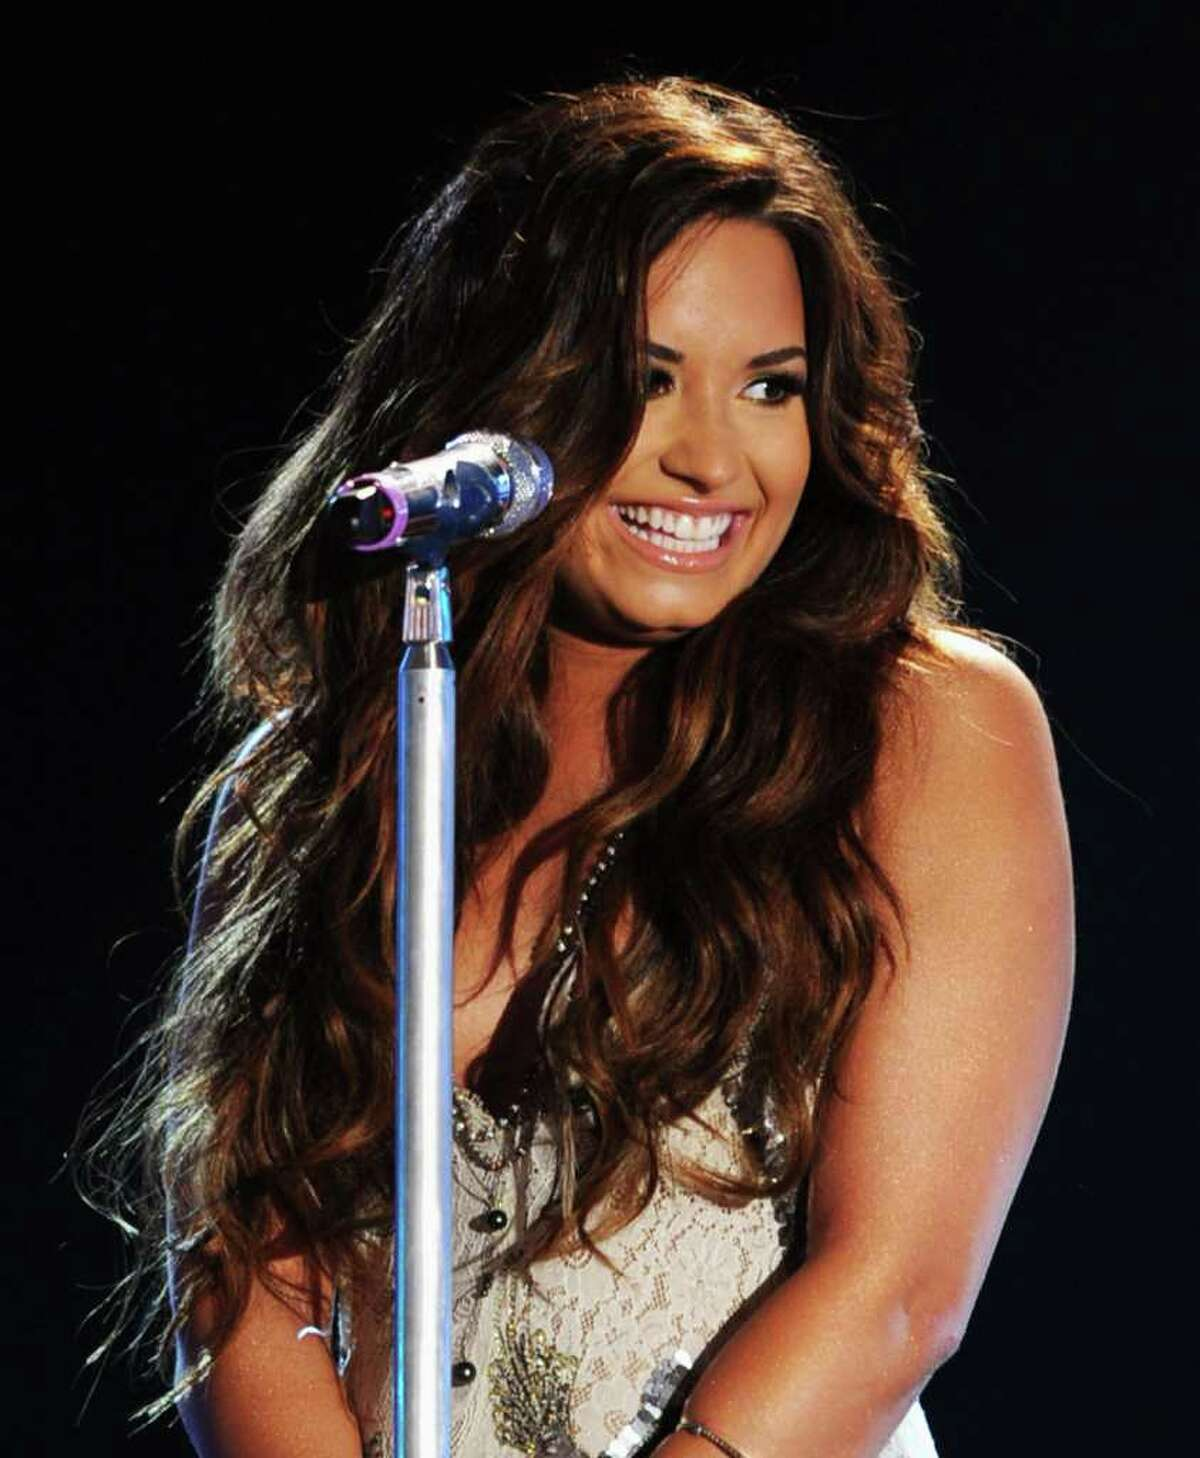 Singer Demi Lovato perform onstage during the 2011 VH1 Do Something Awards at the Hollywood Palladium in Hollywood, California.